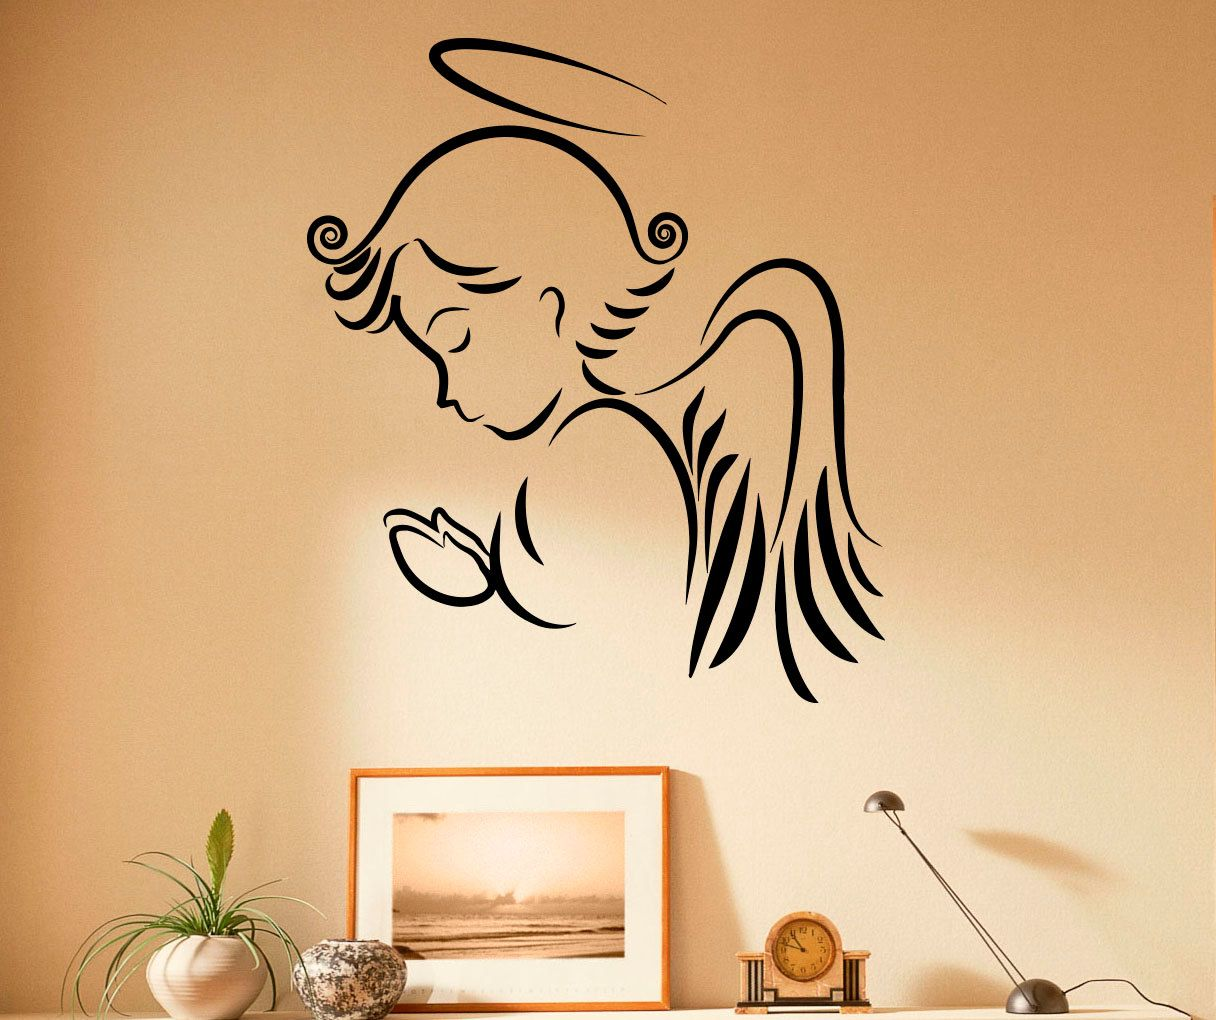 Angel stencils for walls gallery home wall decoration ideas angel stencils for walls images home wall decoration ideas popular items for angel wall decal on amipublicfo Image collections